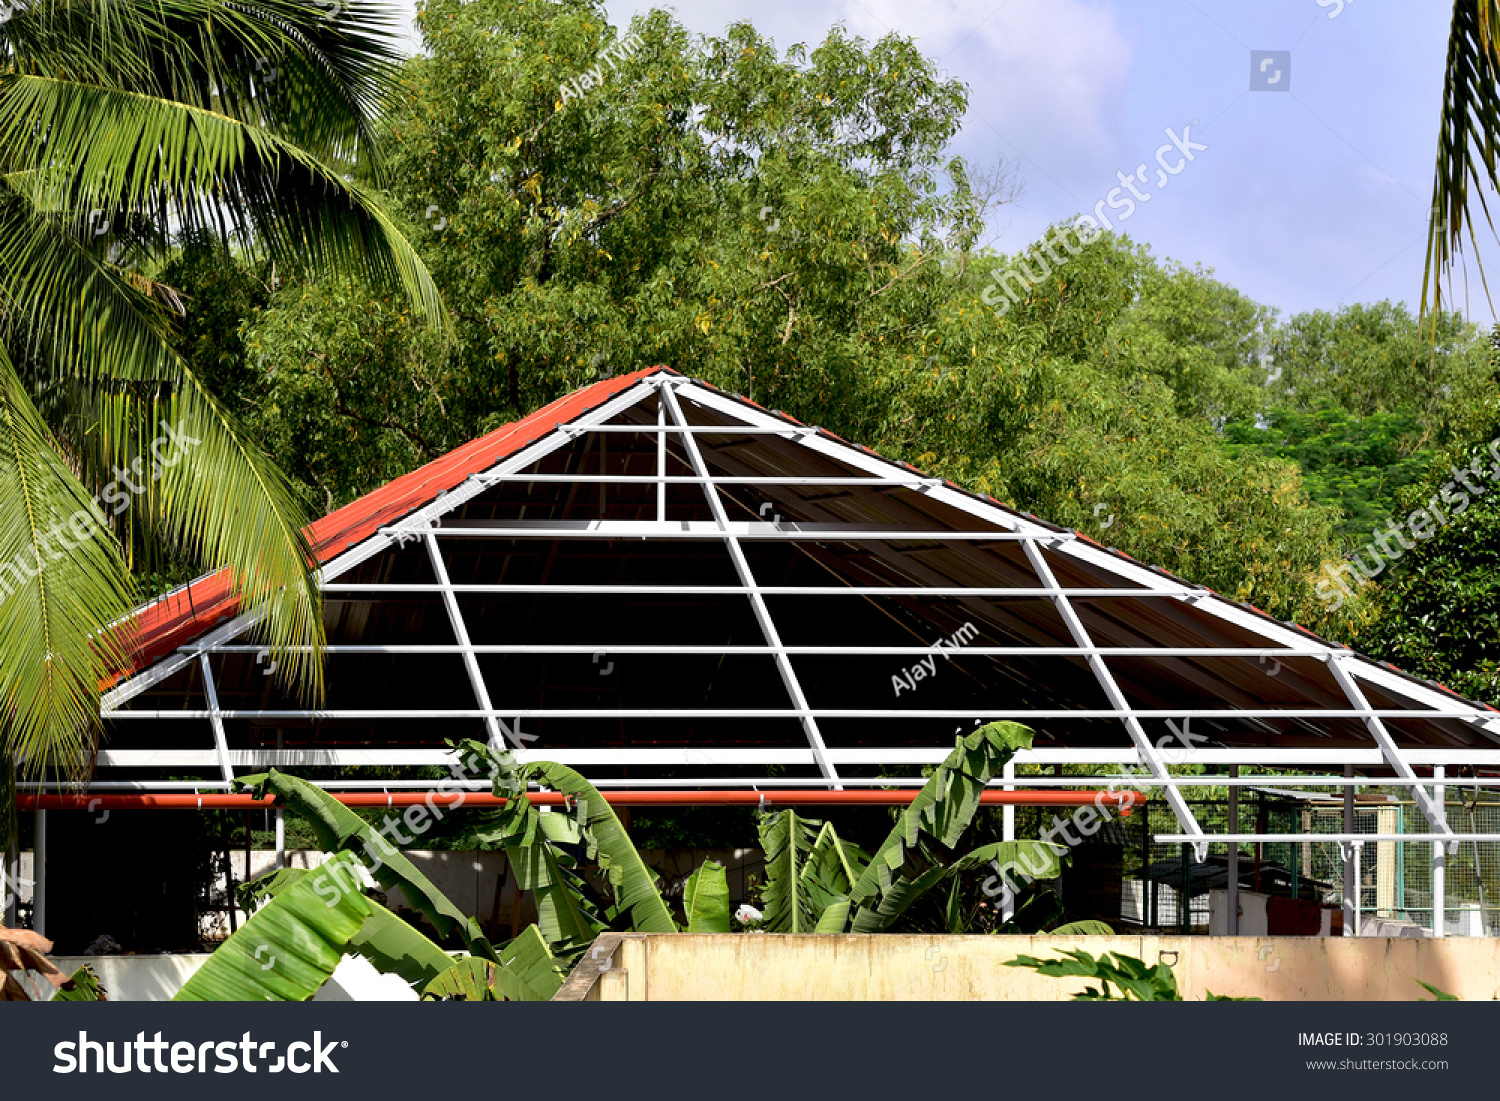 Construction aluminium roof on terrace house stock photo for Terrace roof design india